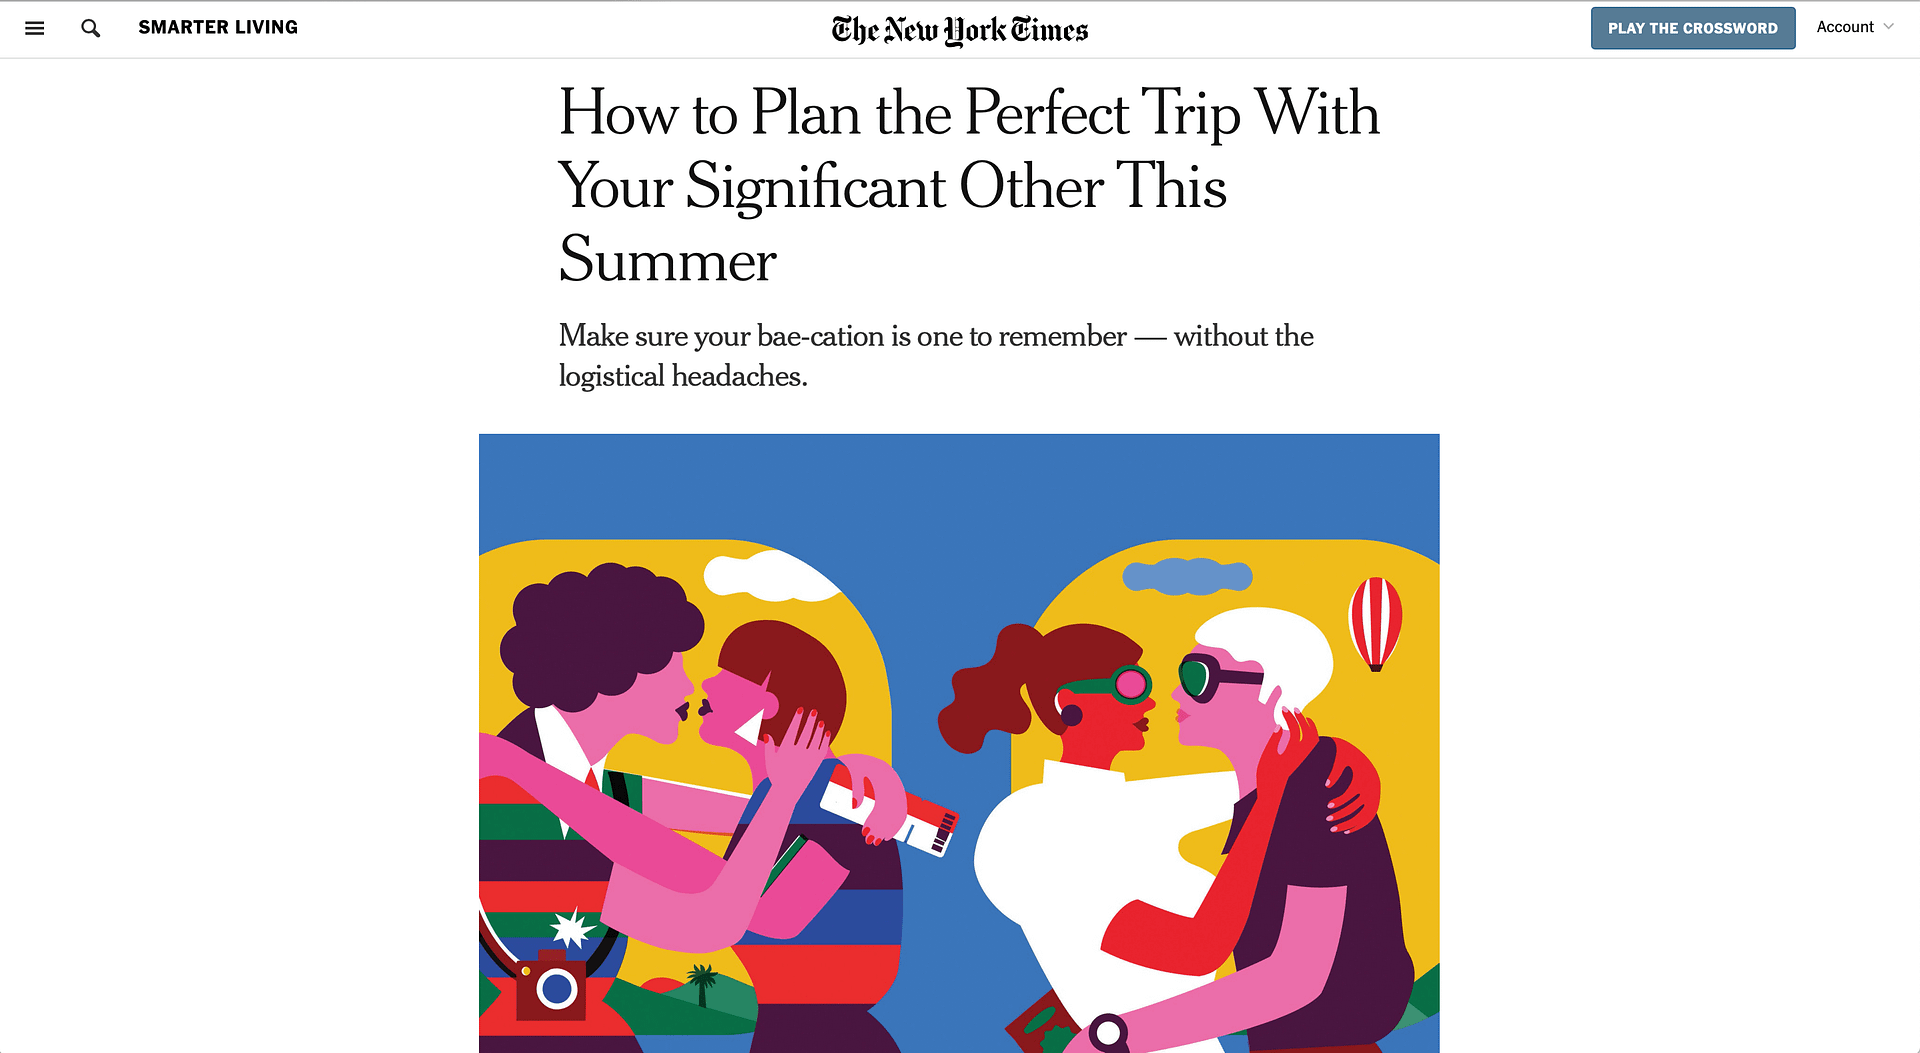 How to Plan the Perfect Trip (NY Times) | LPTG Quote